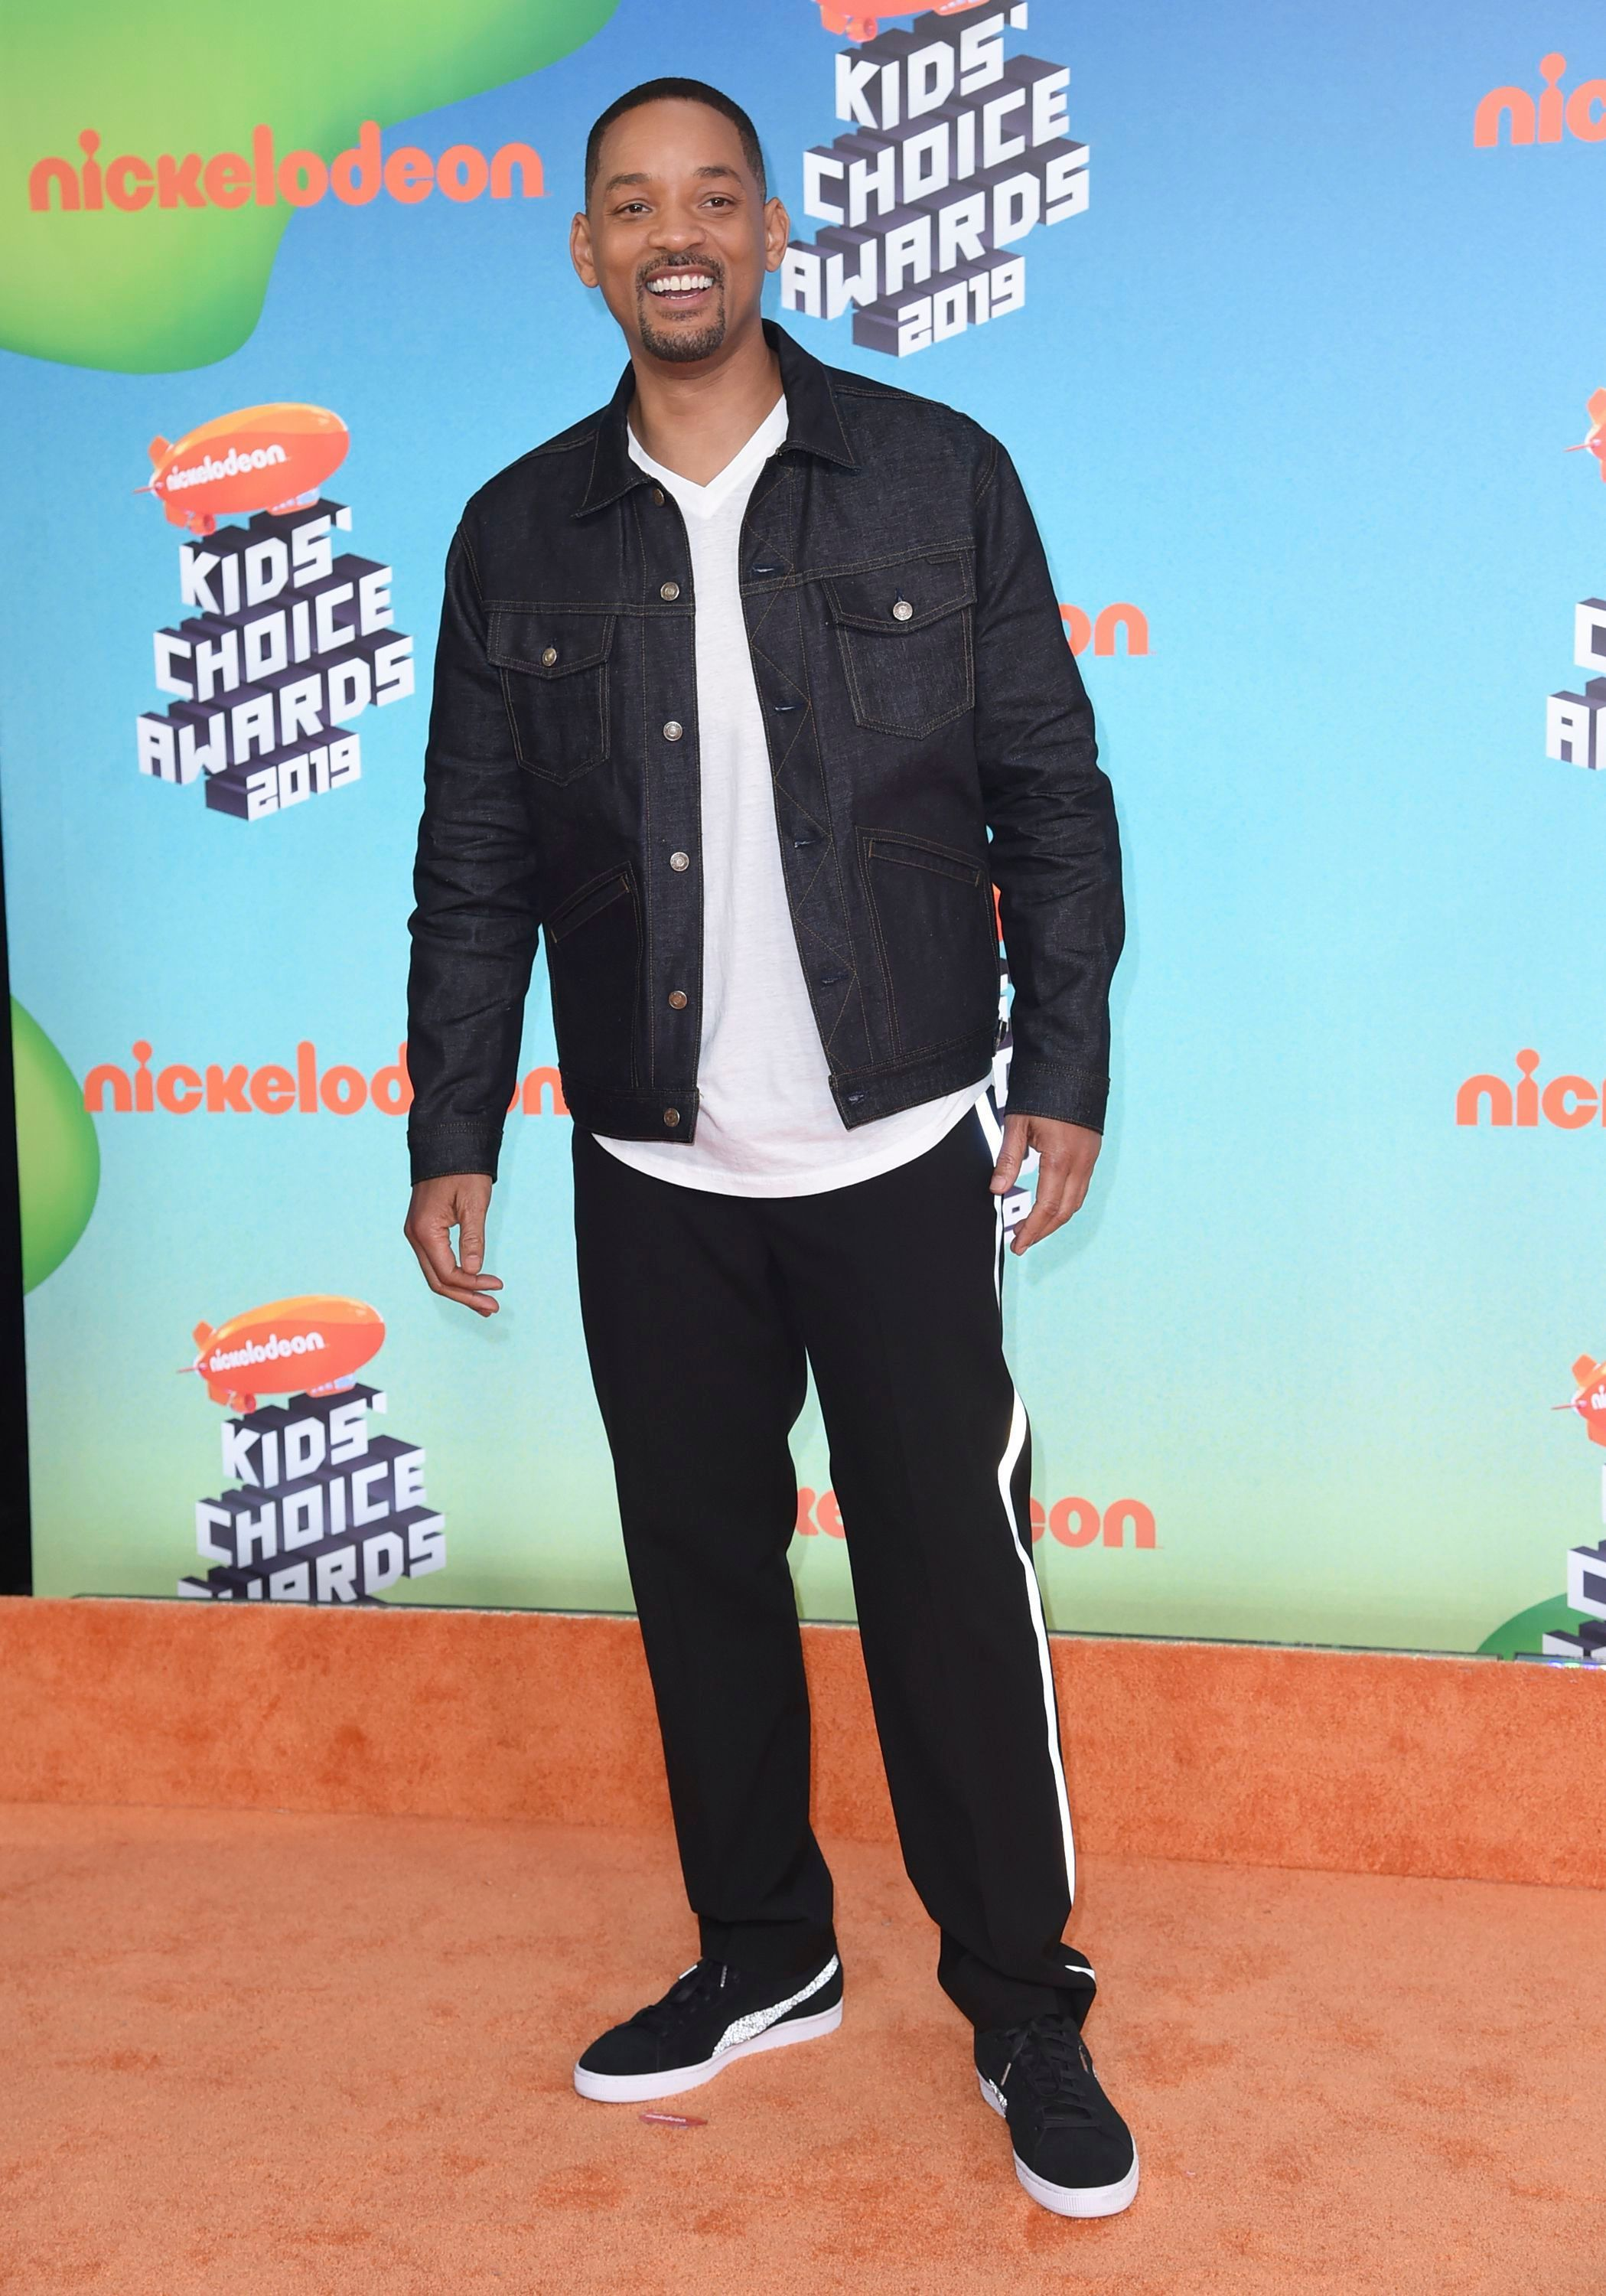 38b86be0 Fashion hits and misses from the 2019 Nickelodeon Kids' Choice Awards